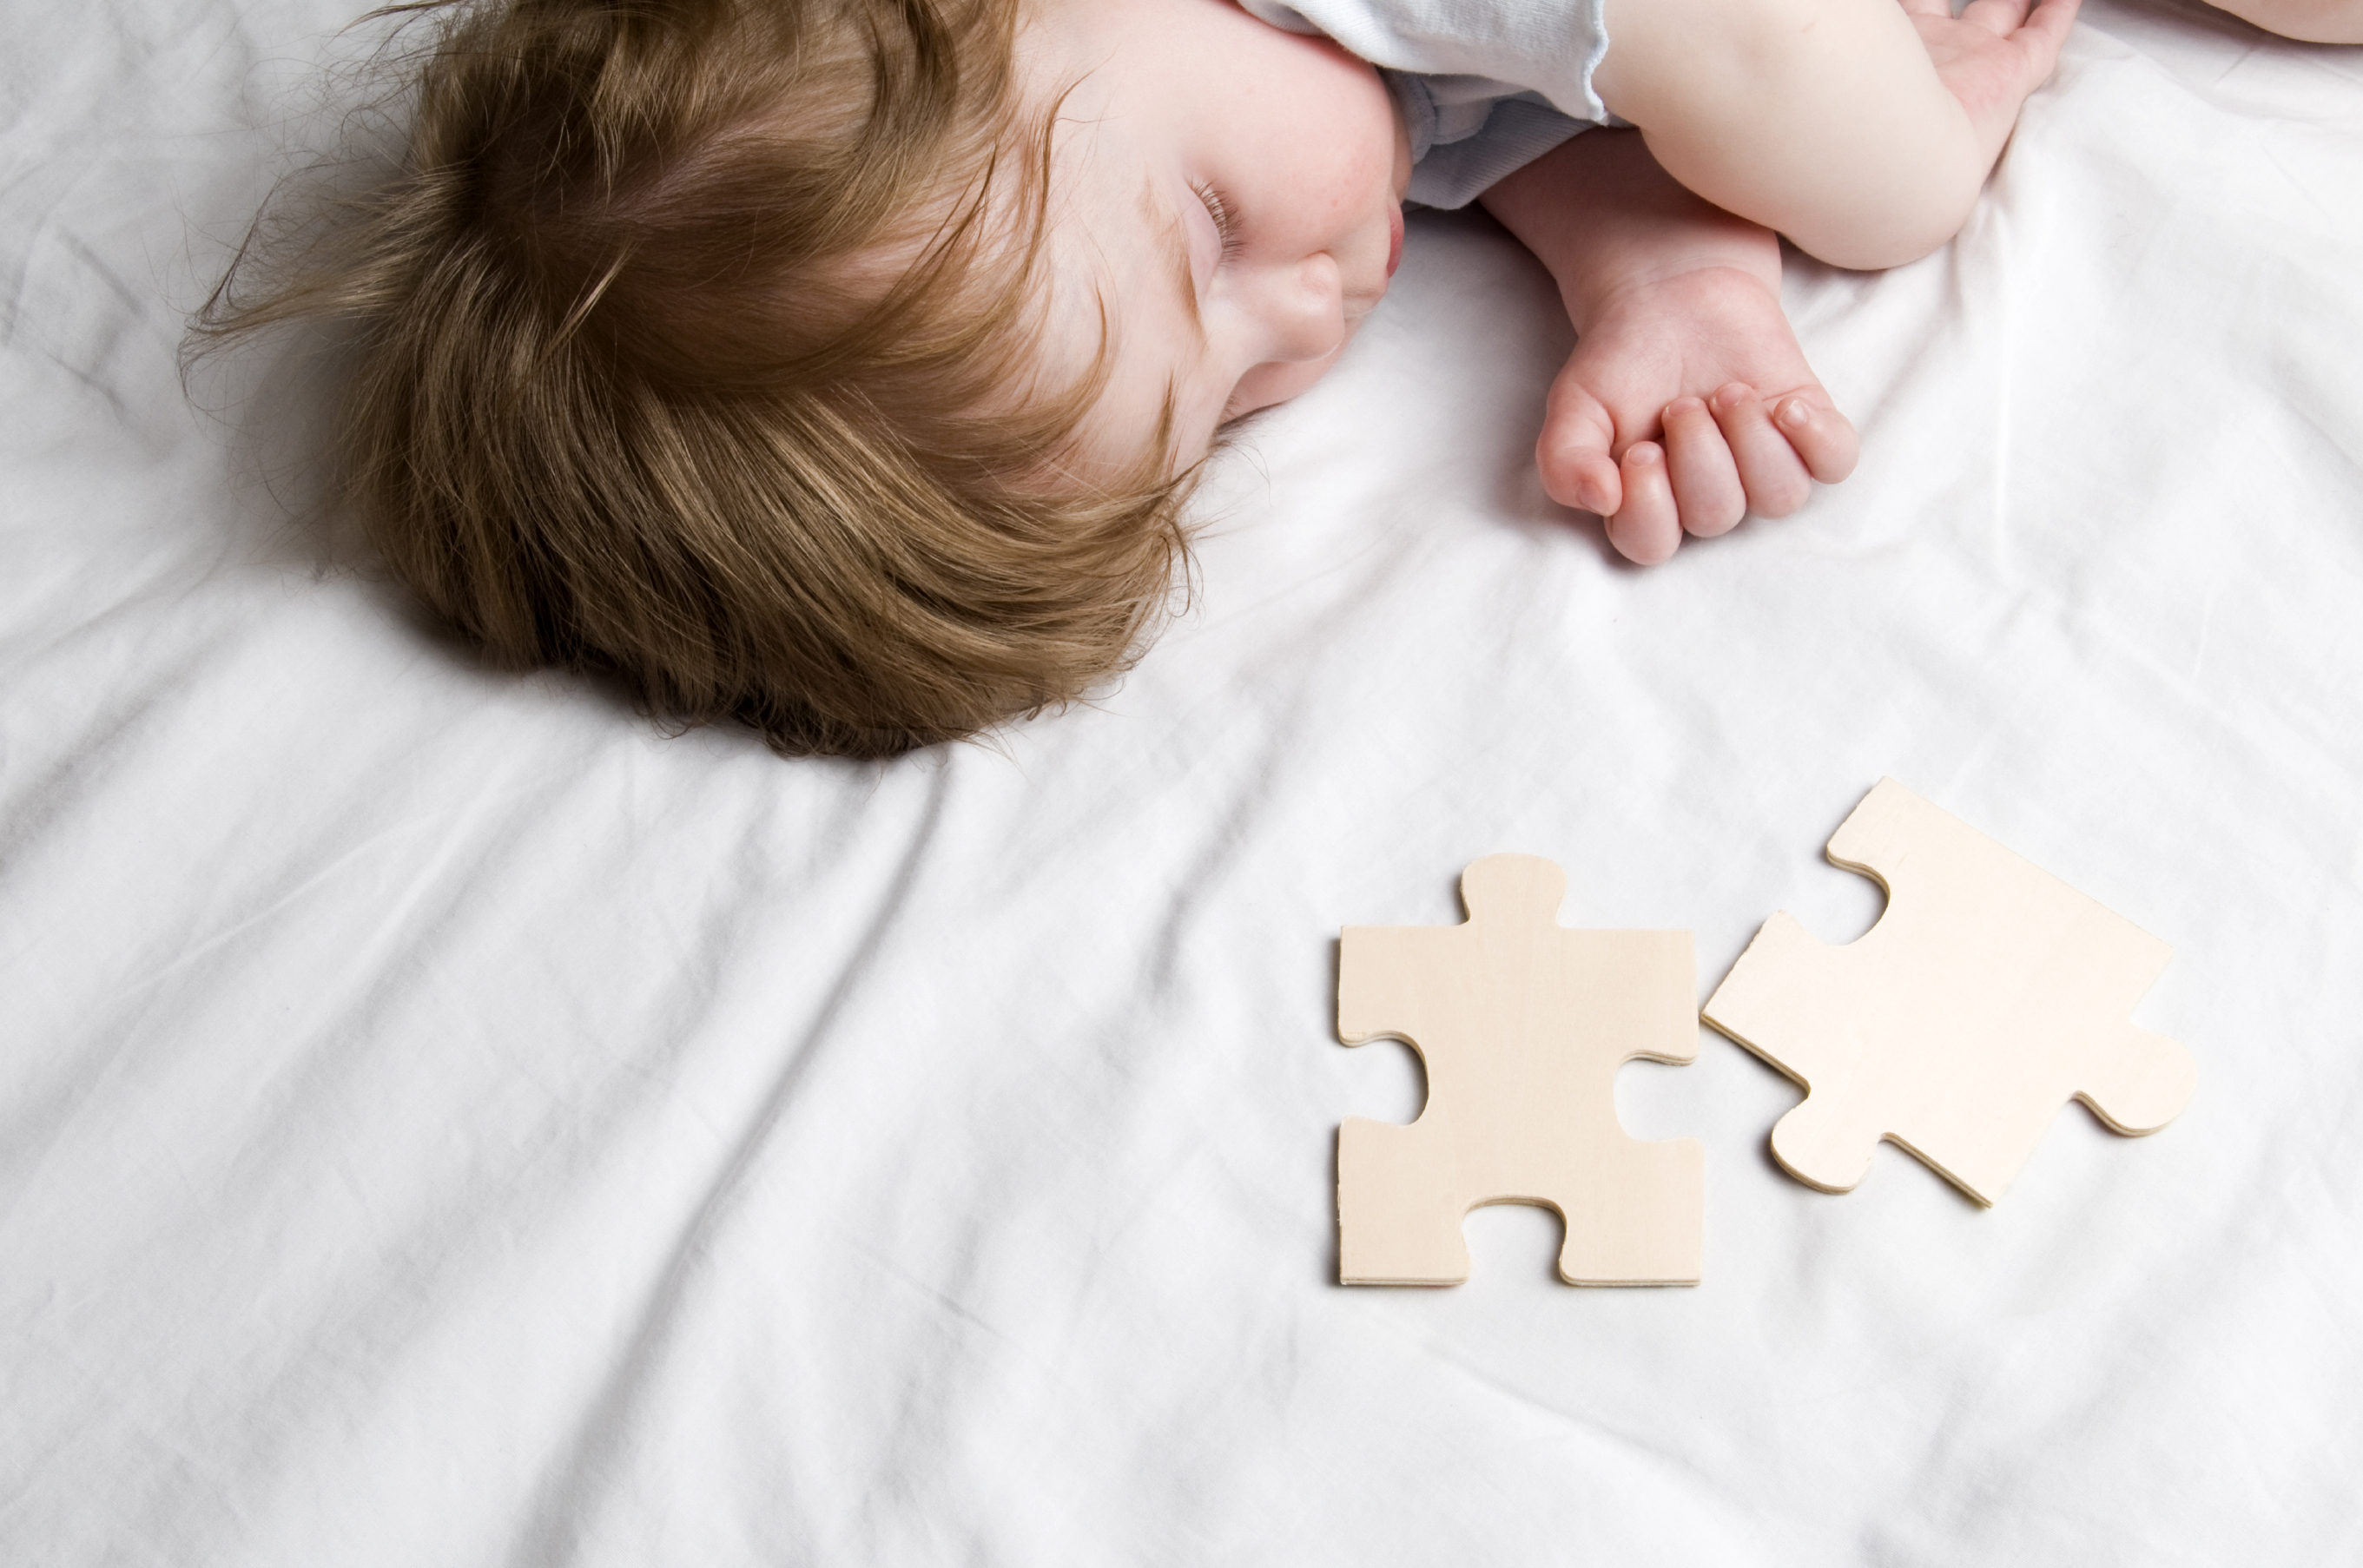 Autisms Rise Tracks With Drop In Other >> U S Autism Rates Appear To Be Stabilizing New Study Suggests Cbs